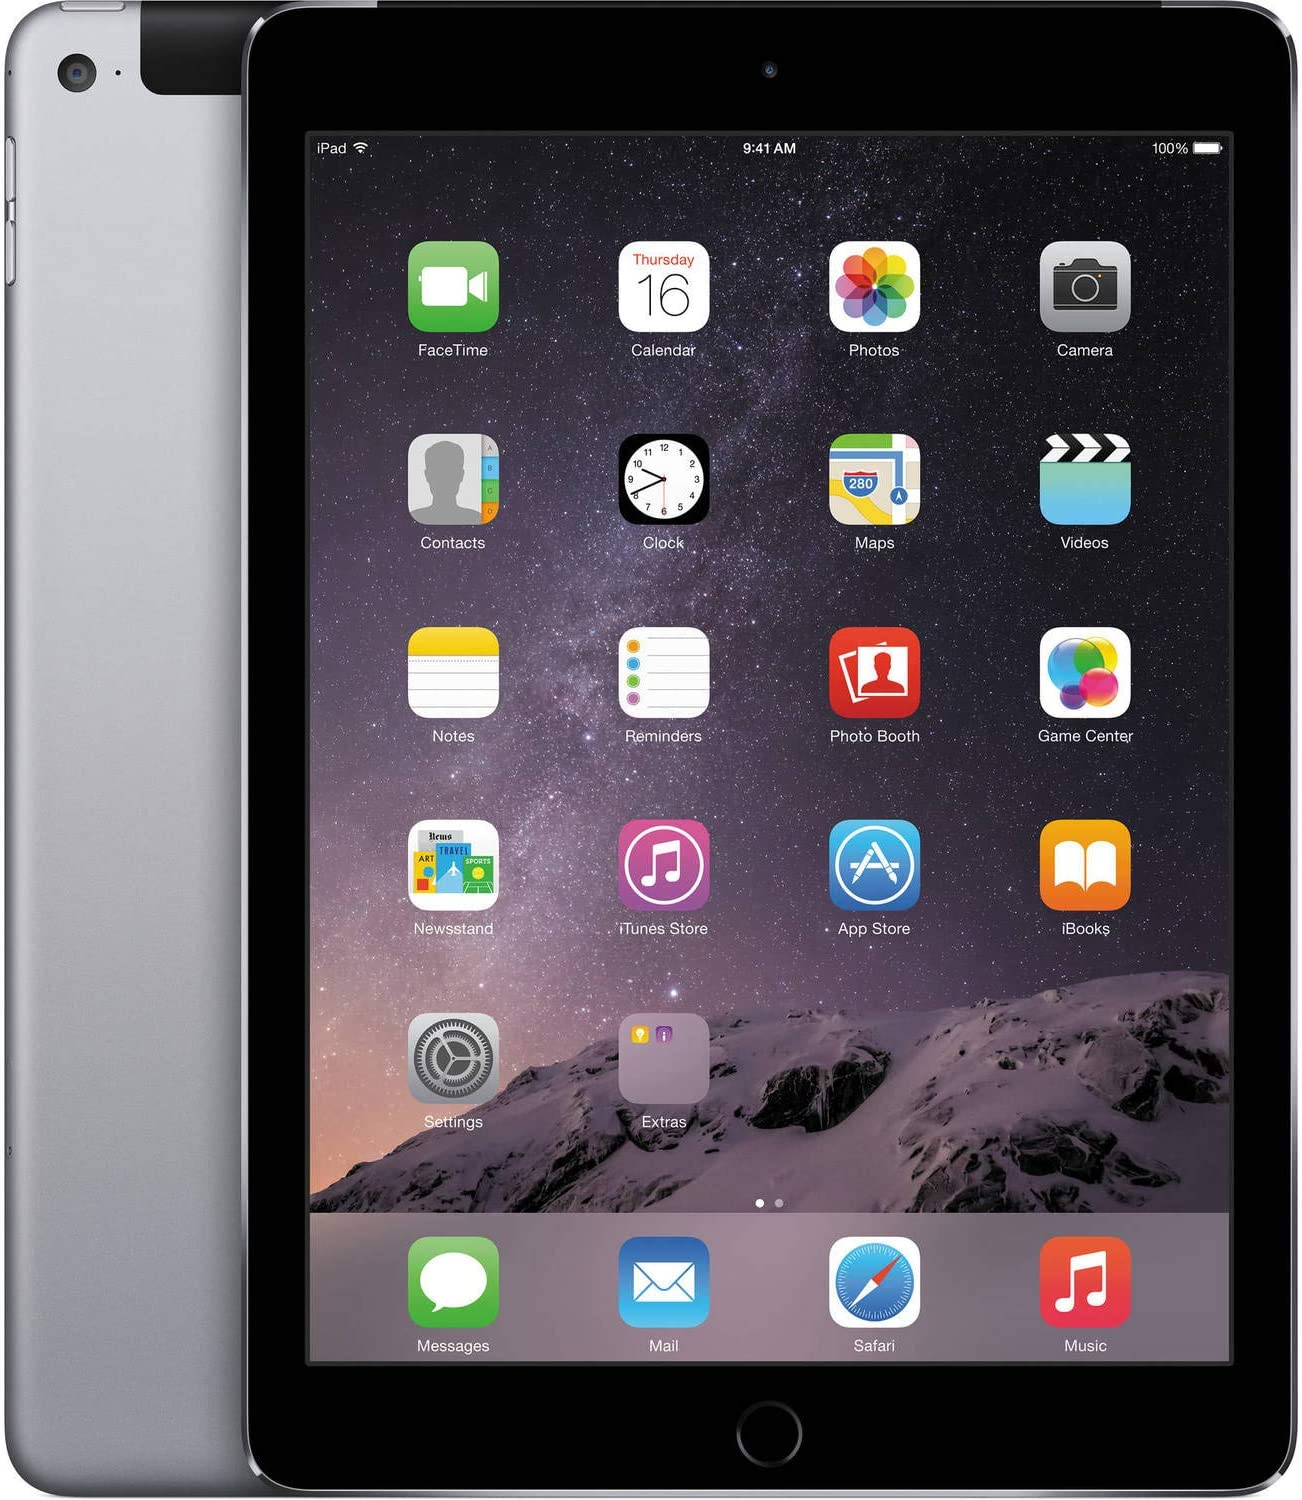 Apple iPad Air 2 64GB, Wi-Fi and Cellular (Unlocked), 9.7inch Space Gray [Refurbished]